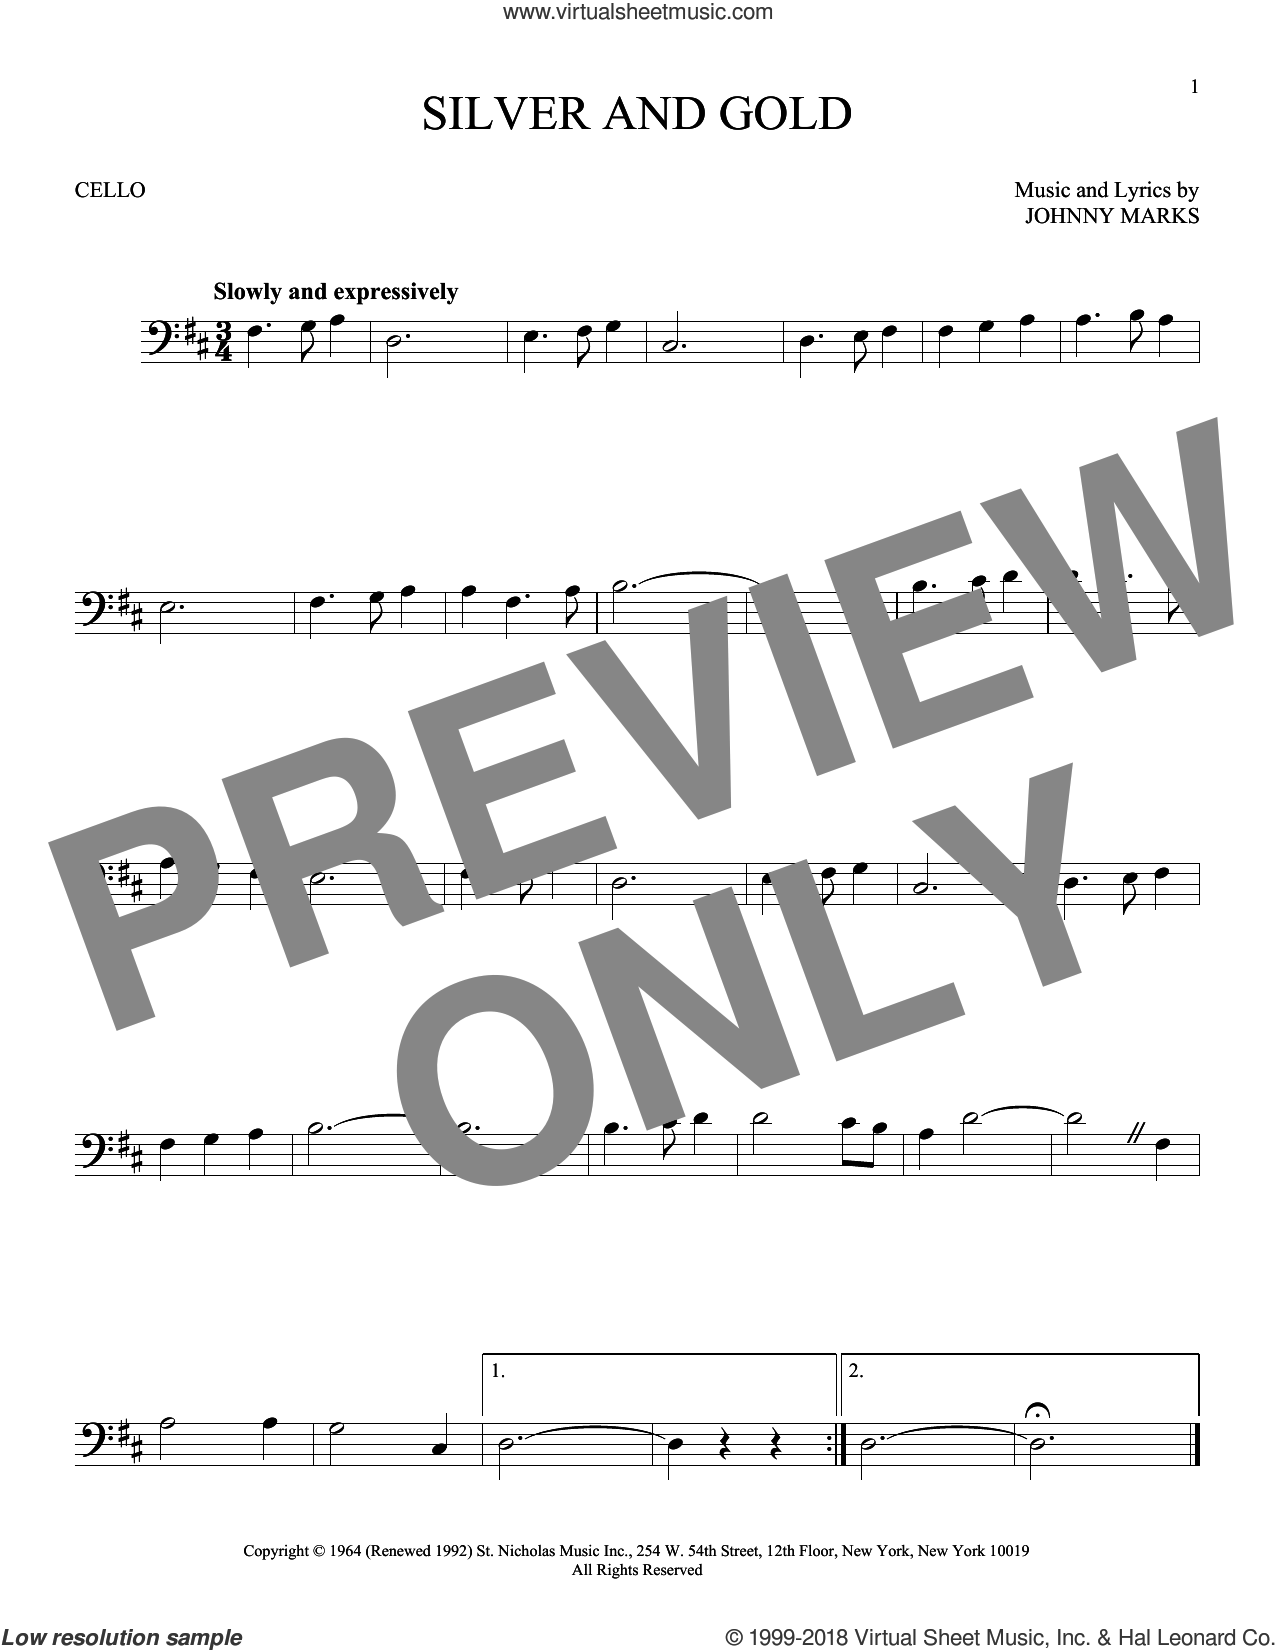 Silver And Gold sheet music for cello solo by Johnny Marks, intermediate skill level